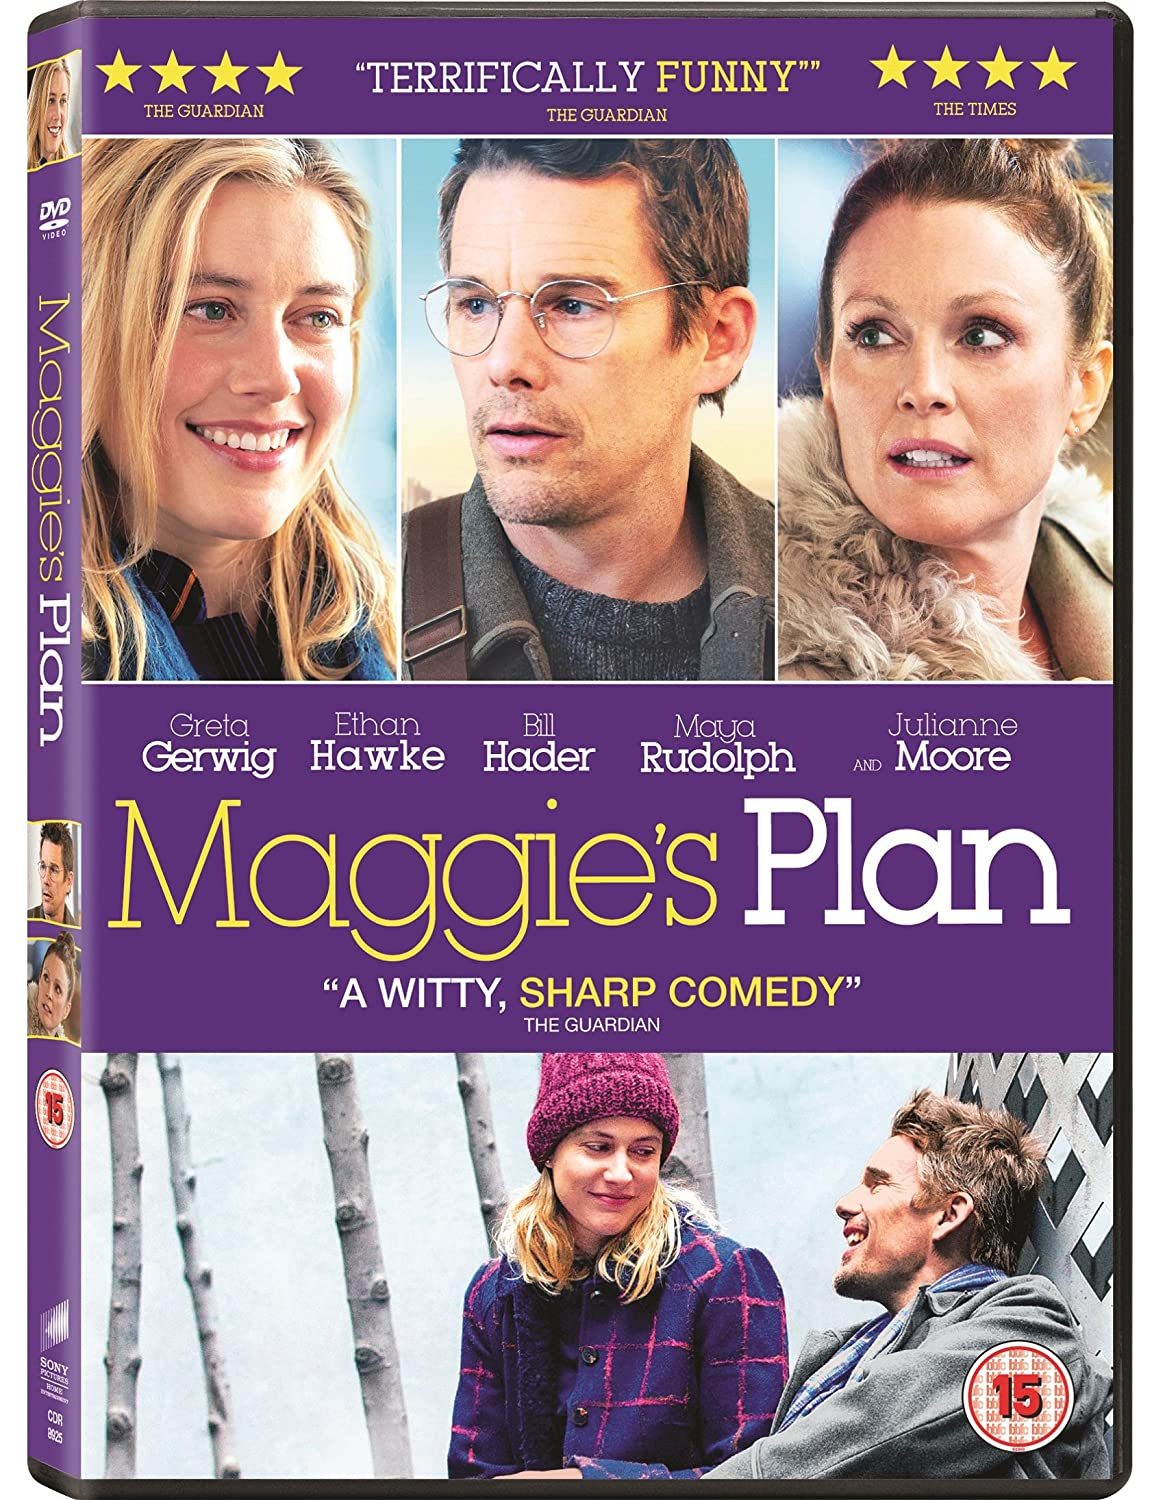 maggie s plan dvd 2016 amazon co uk greta gerwig julianne maggie s plan dvd 2016 amazon co uk greta gerwig julianne moore bill hader ethan hawke a rudolph travis fimmel wallace shawn alex morf